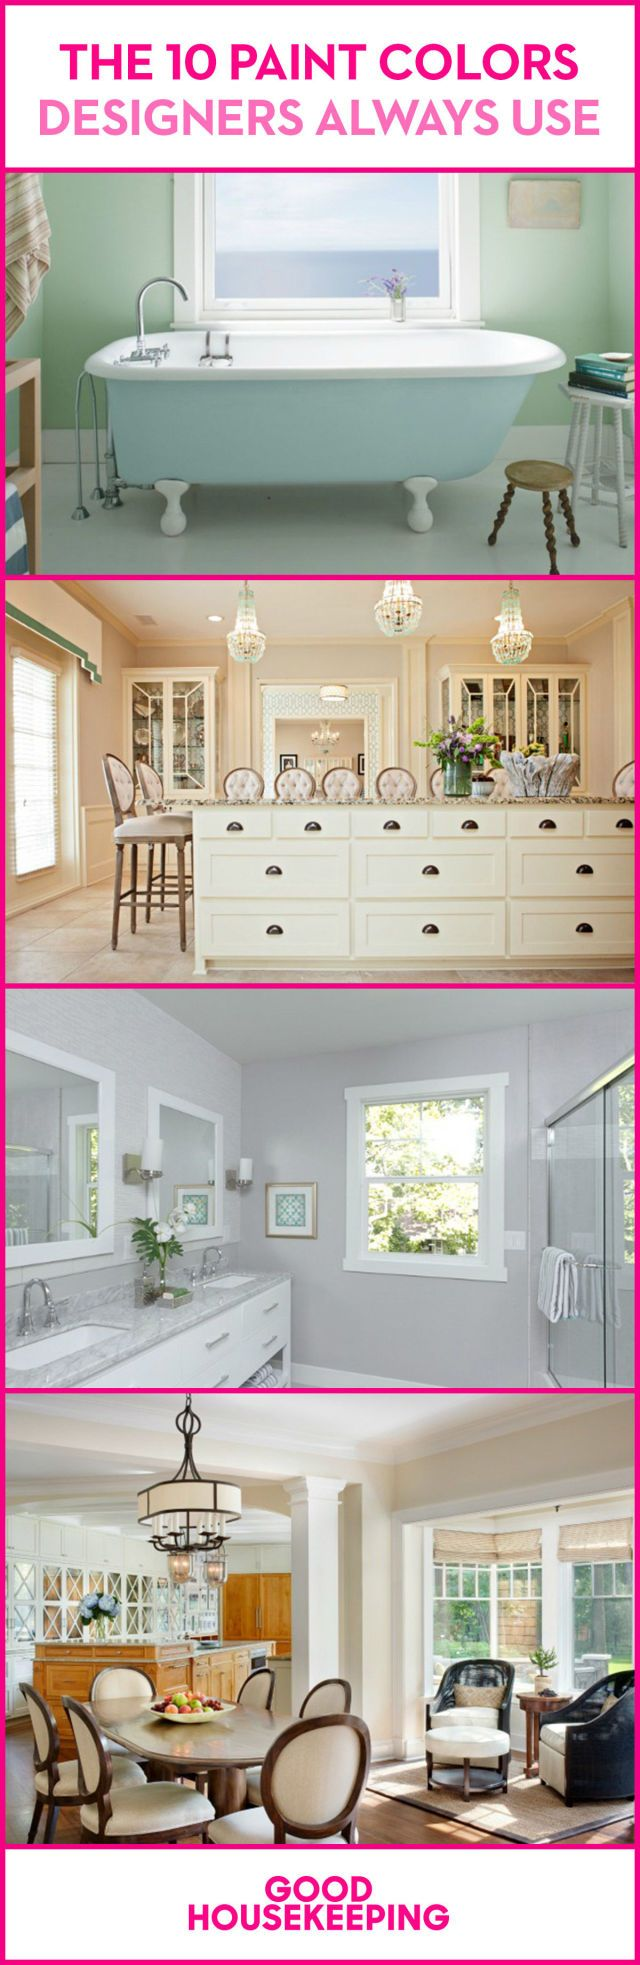 The 10 paint colors designers always use paint colors - Interior design house paint colors ...